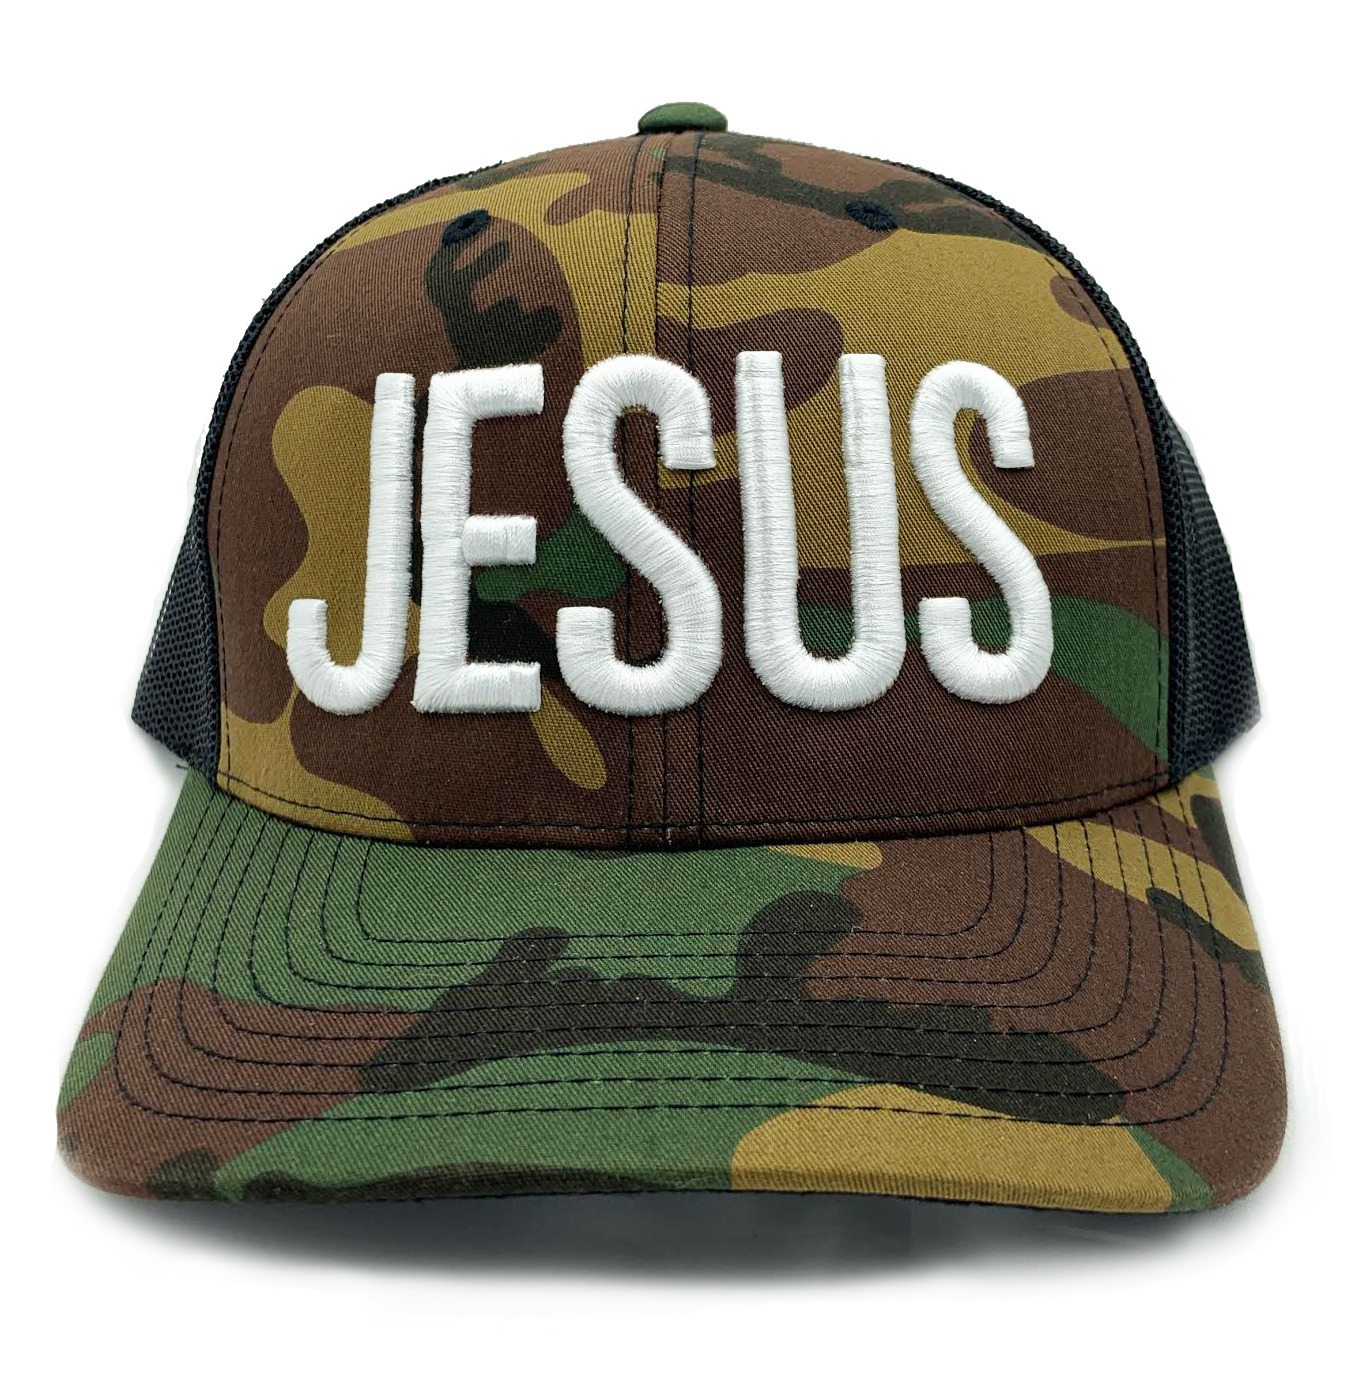 357a34f9f152d New Jesus blue trucker hat by Risen Apparel Christian clothing